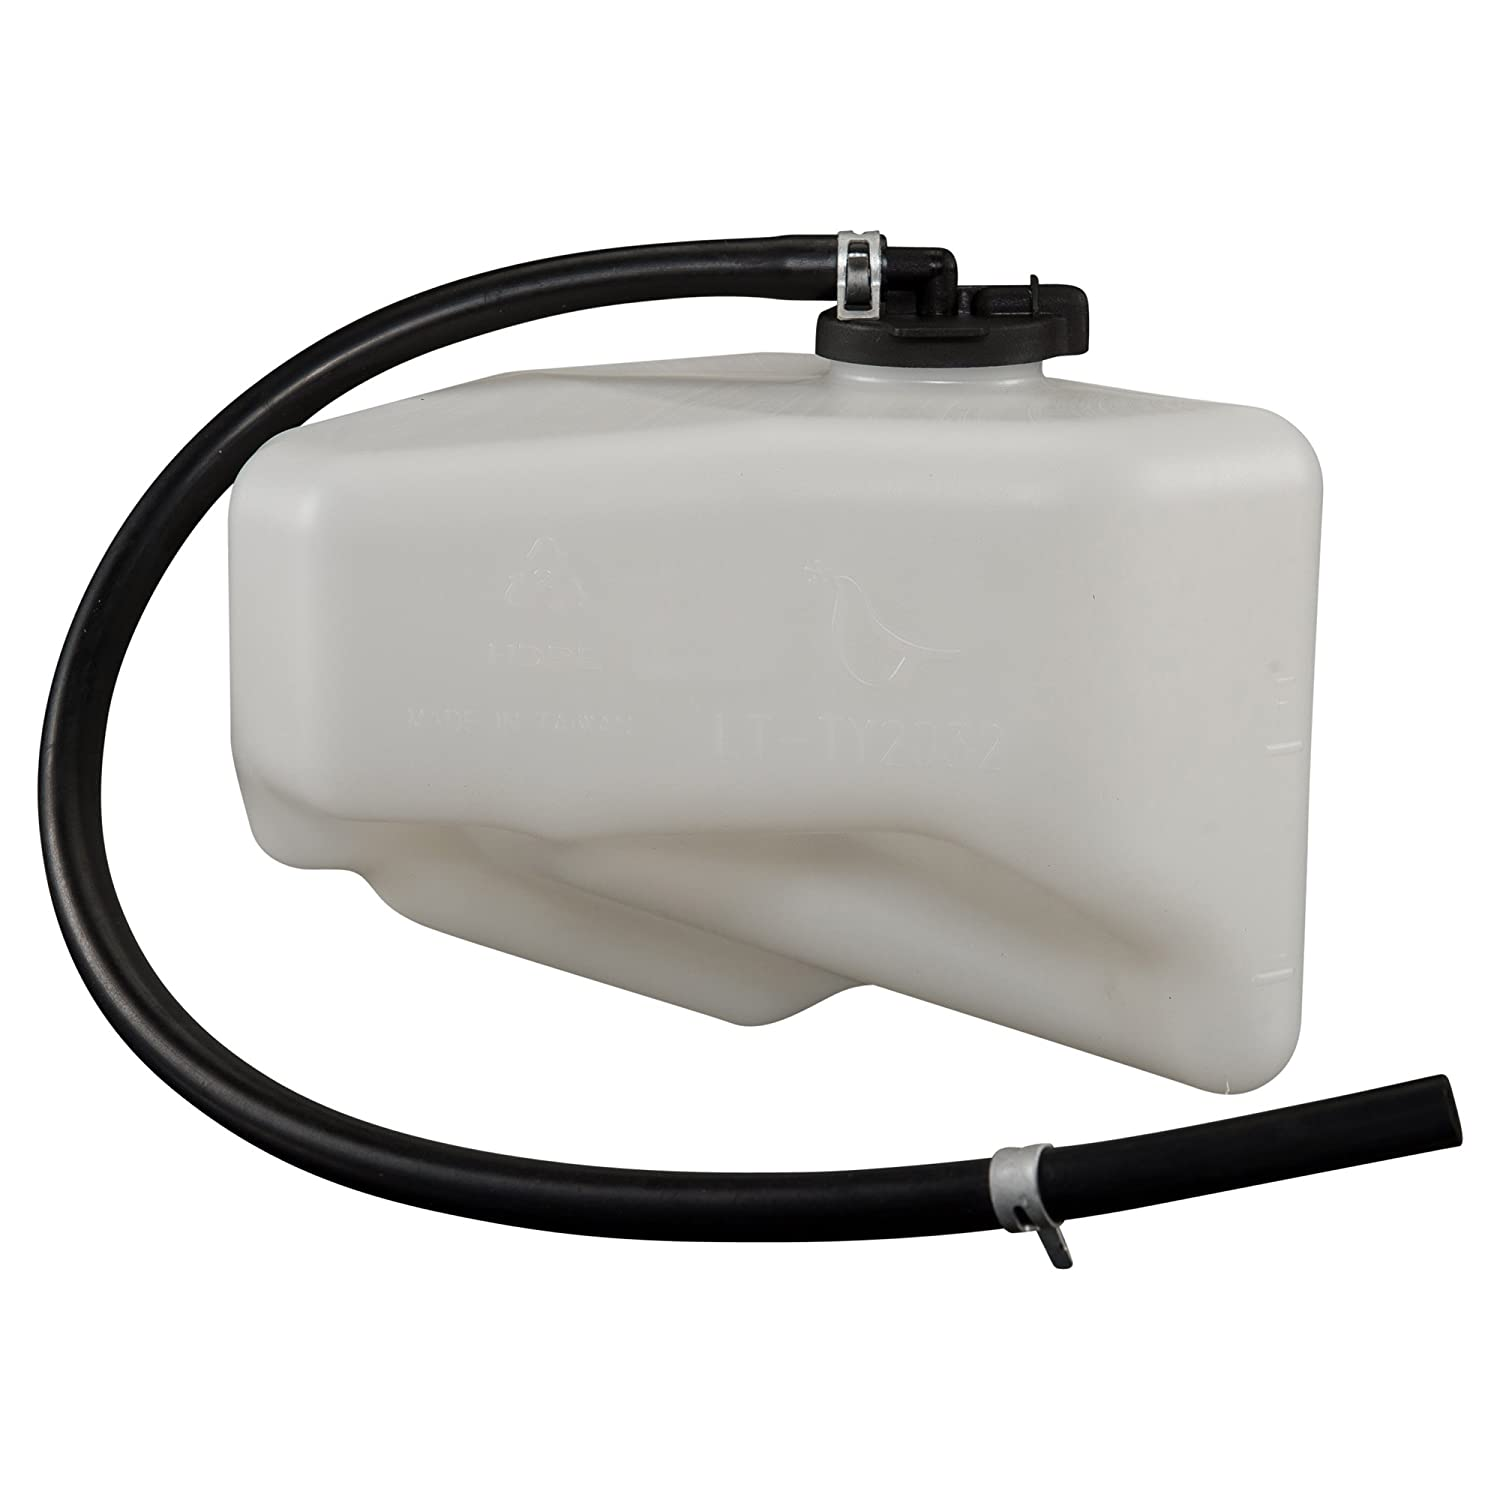 Coolant Tank Reservoir for 2004-2007 Toyota Highlander 3.3L fits TO3014121 / 16470-20100/1647020100 / 671-50378 Parts Galaxy